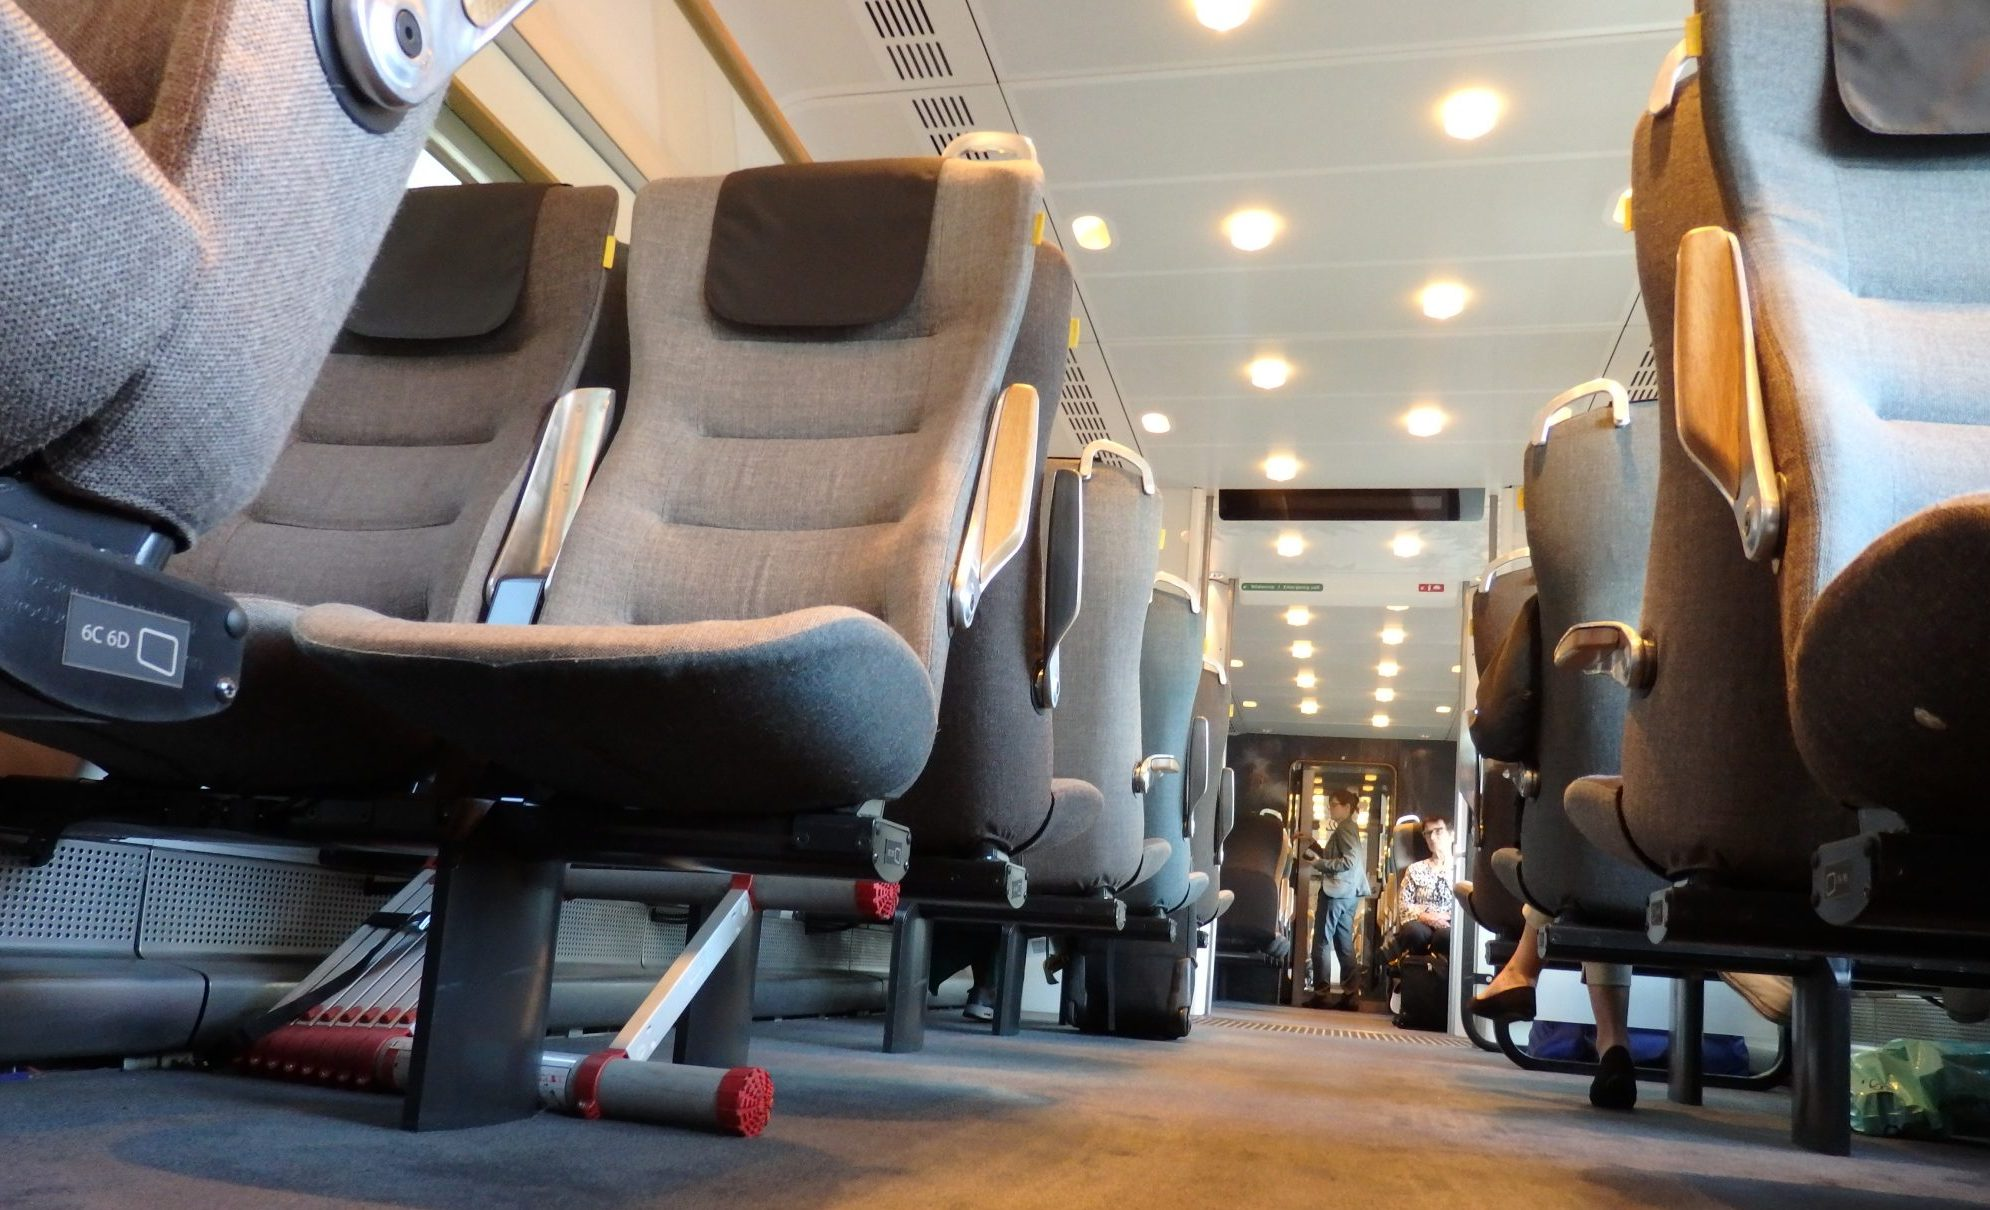 The well-designed Arlanda Express train from the airport to Stockholm, Sweden.